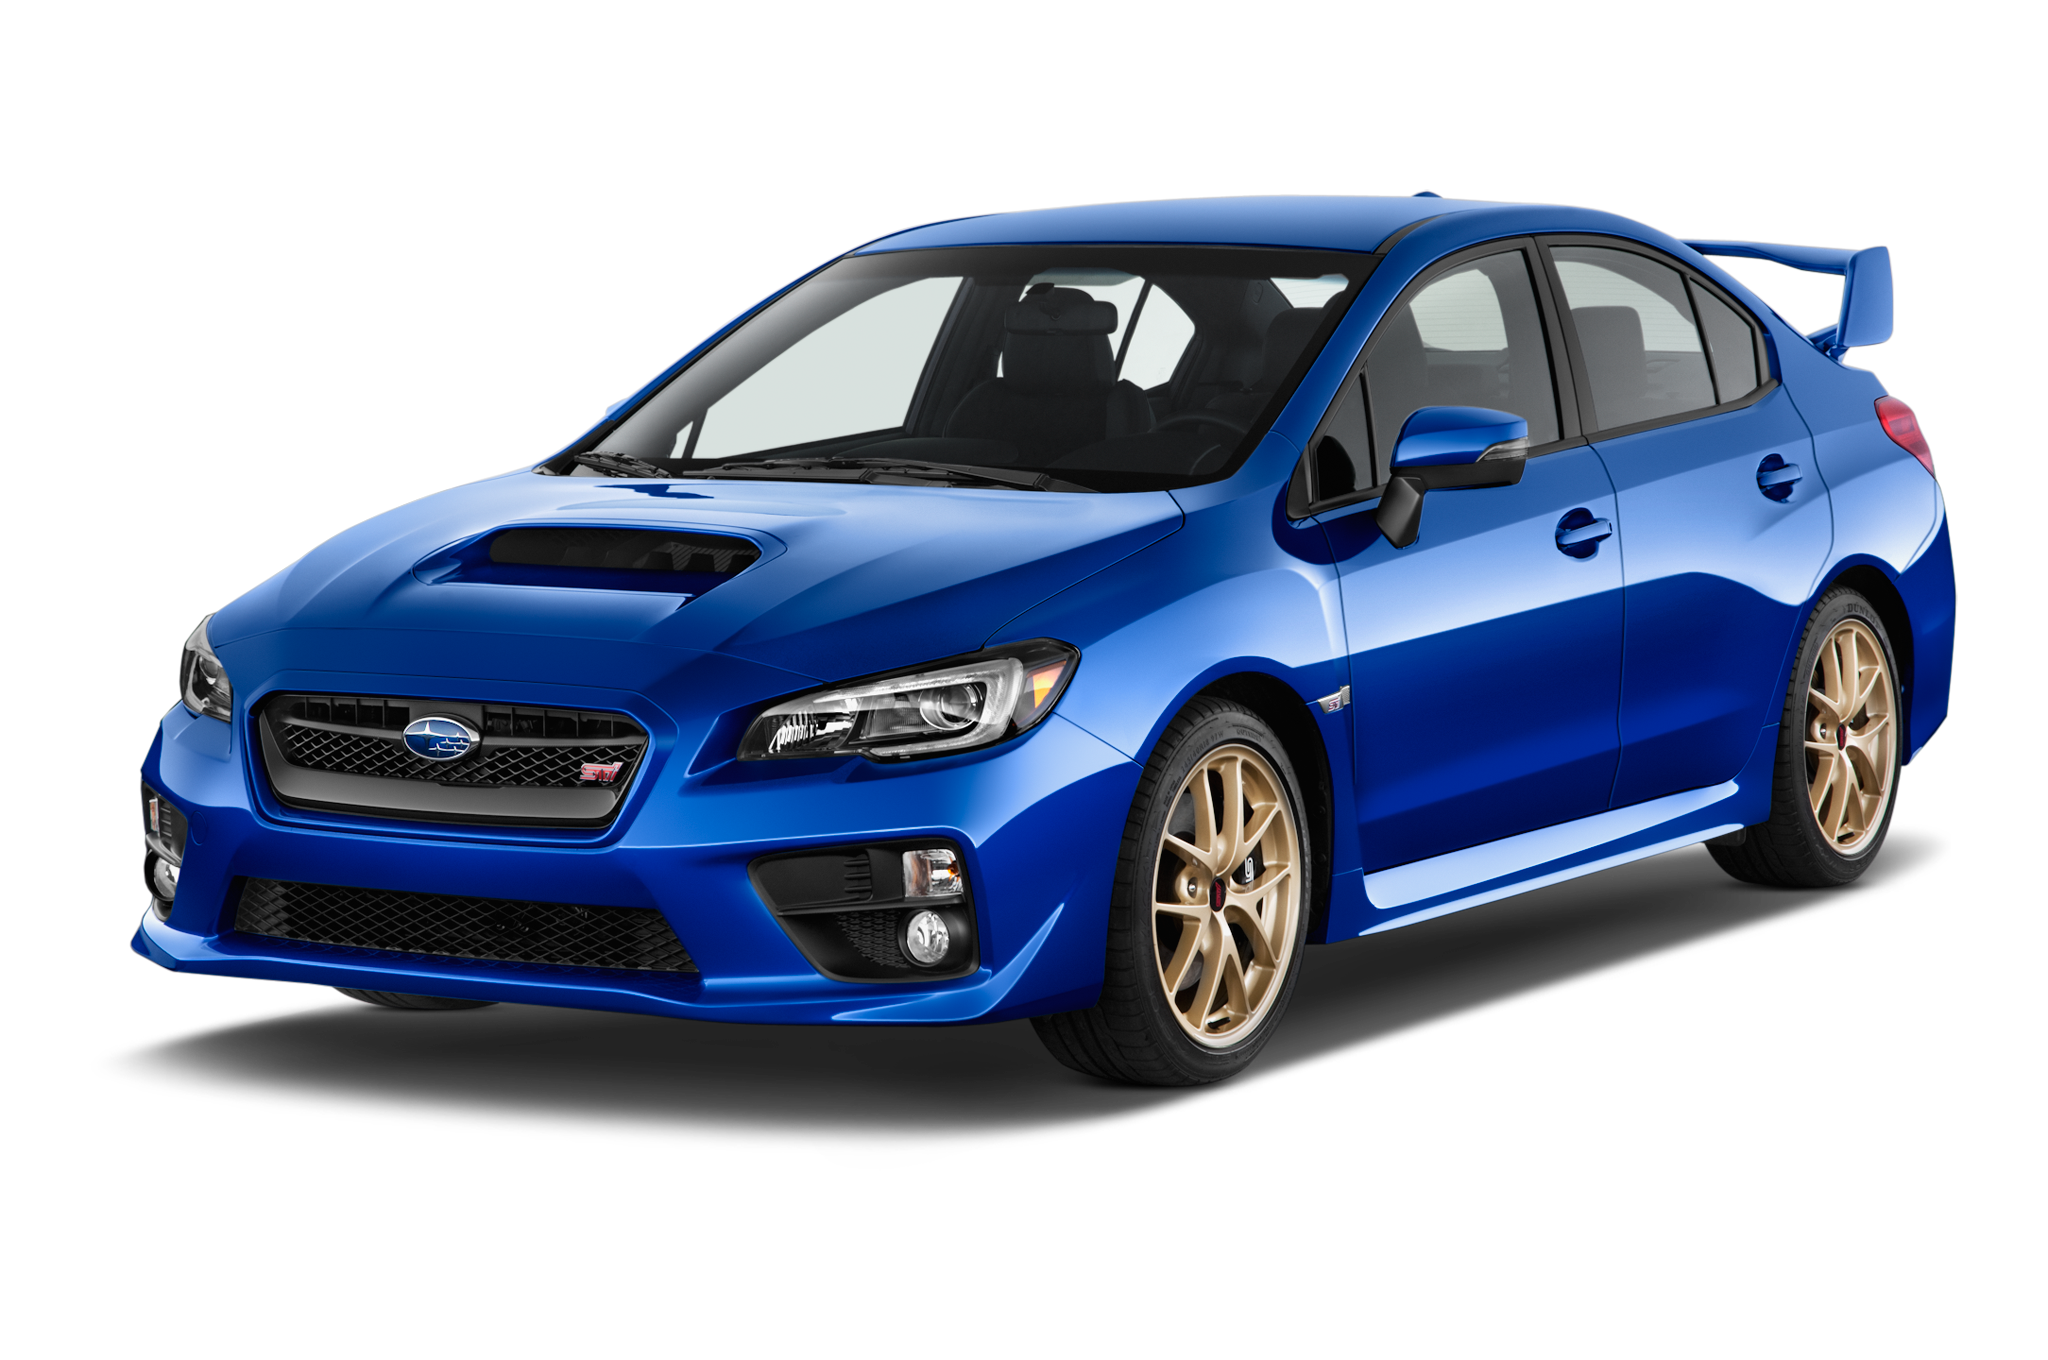 2017 subaru wrx wrx sti 2016 subaru crosstrek se priced automobile magazine. Black Bedroom Furniture Sets. Home Design Ideas